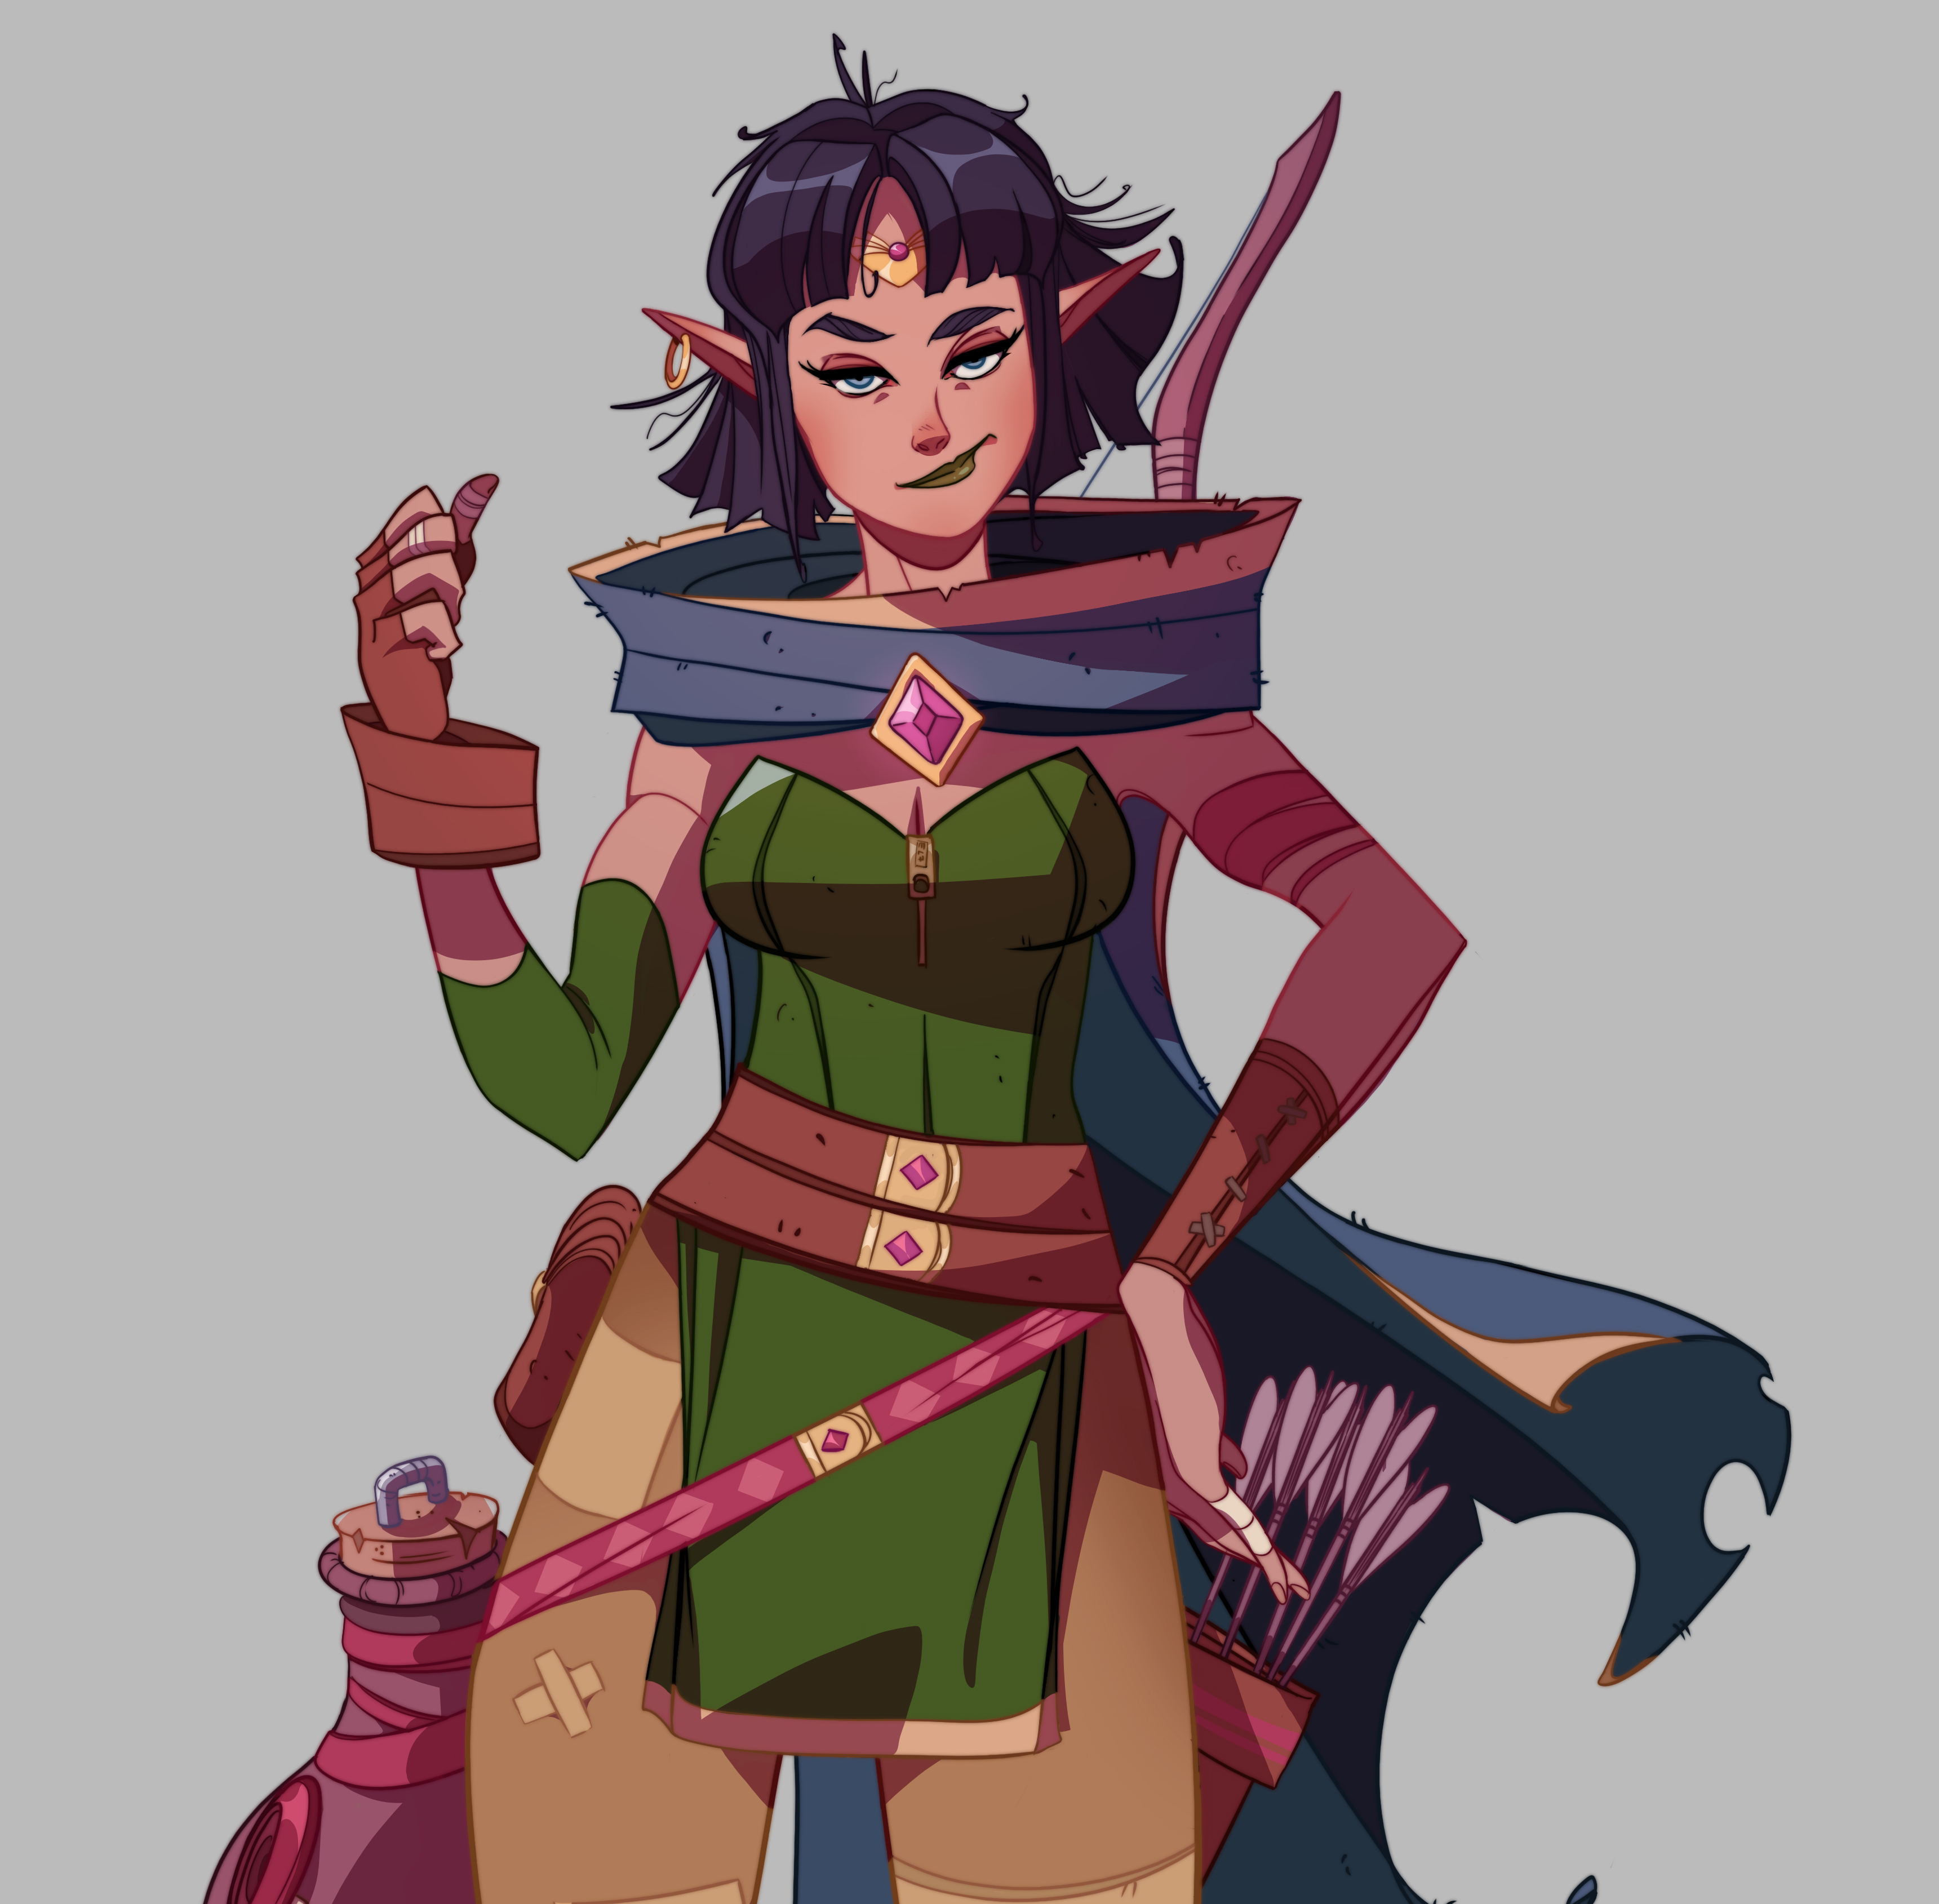 Salora: the Rogue Elf with some alcohol issues.